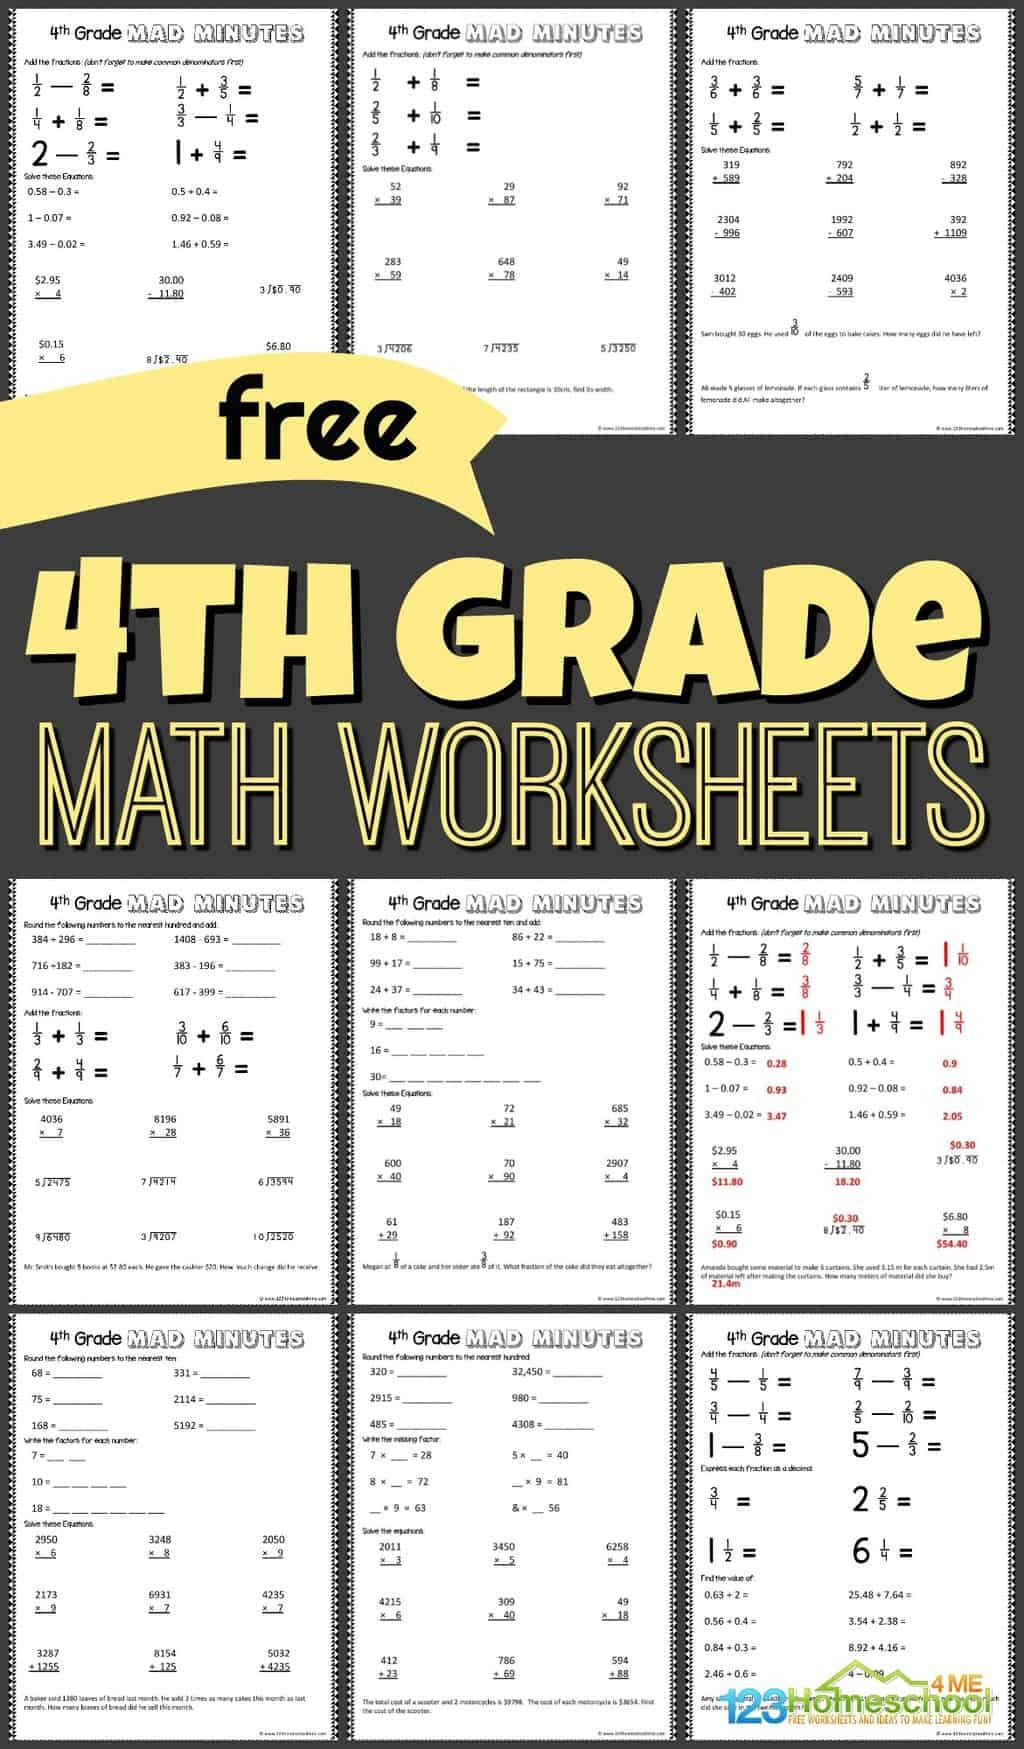 Everyday Math 4th Grade Worksheets Math Worksheet 4th Gradeorksheets Printable Math Free